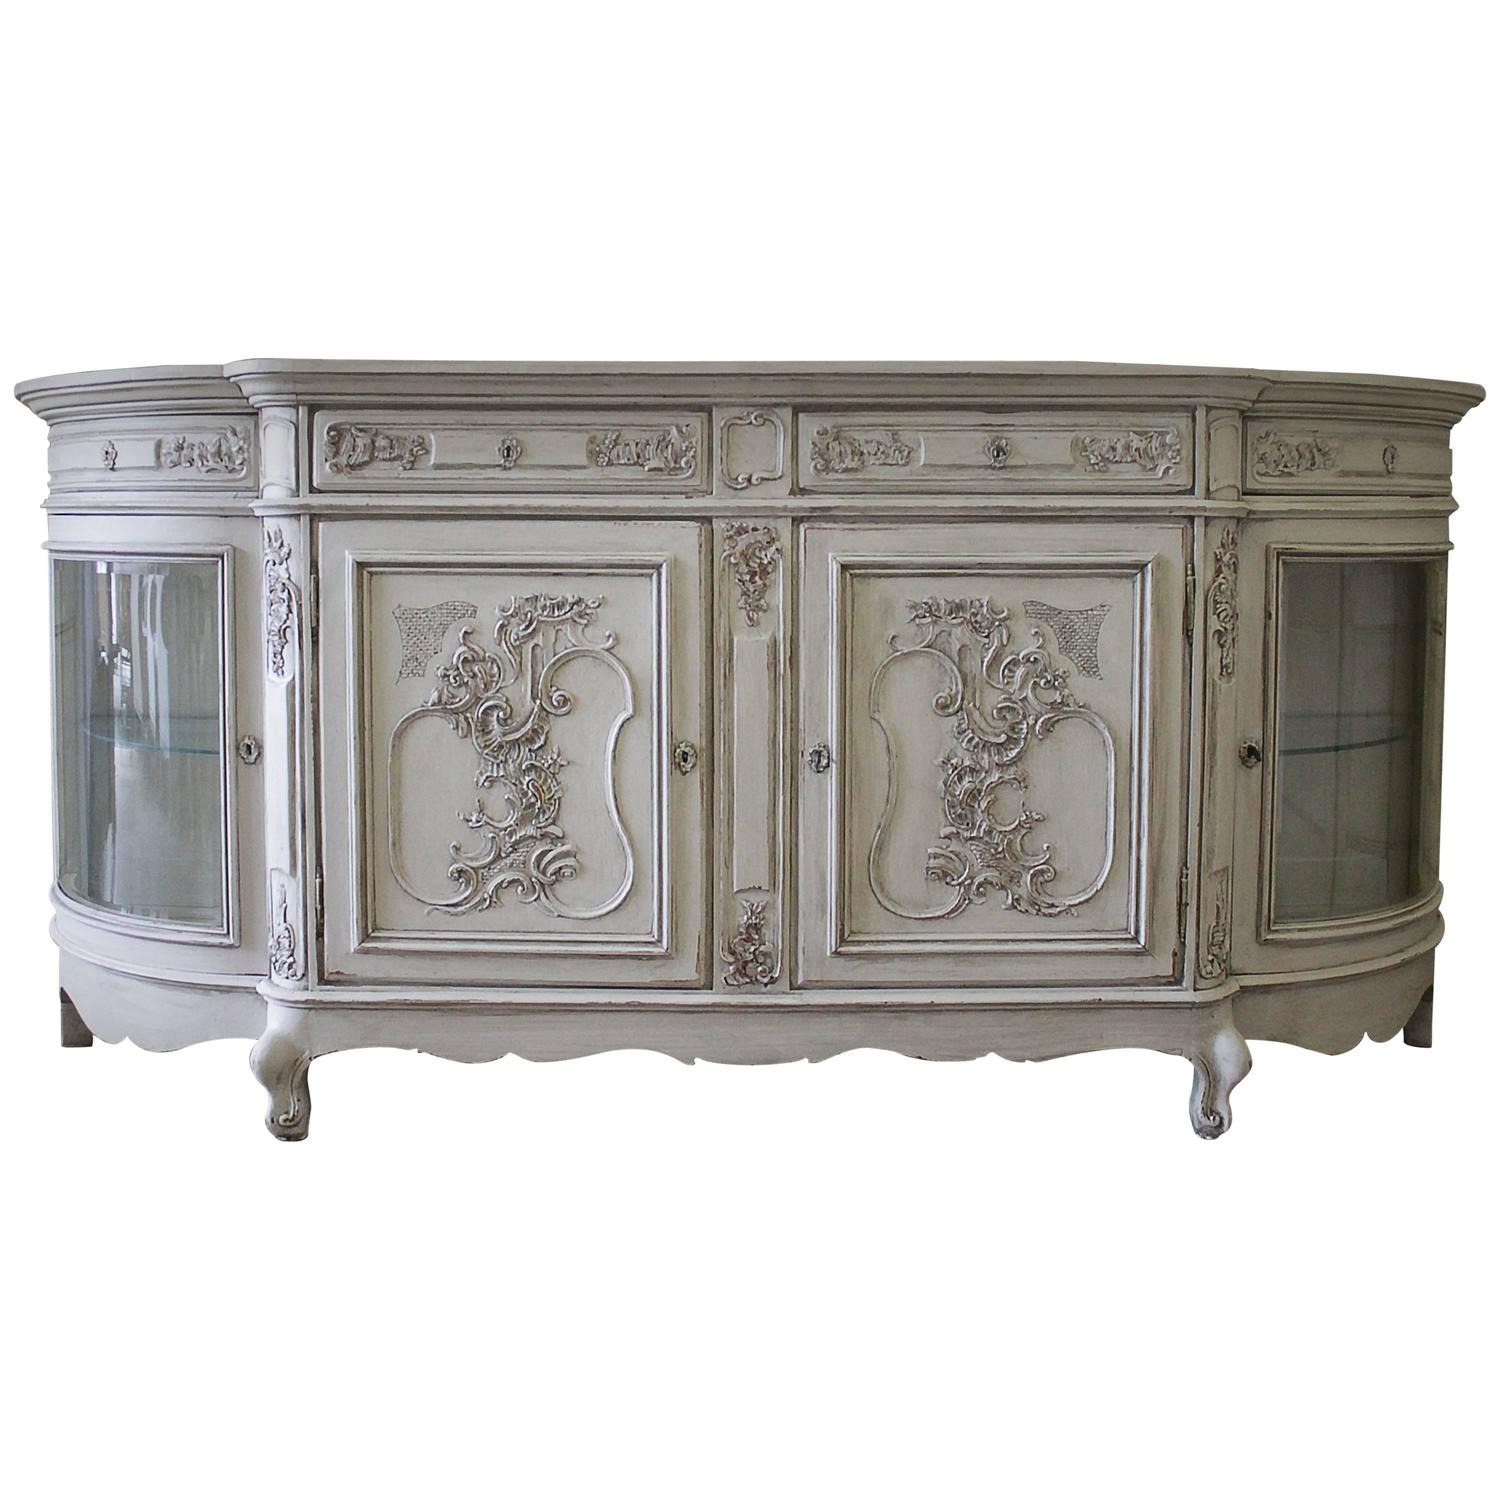 Antique glass flower carvings sideboard crown french furniture - Antique Glass Flower Carvings Sideboard Crown French Furniture 45